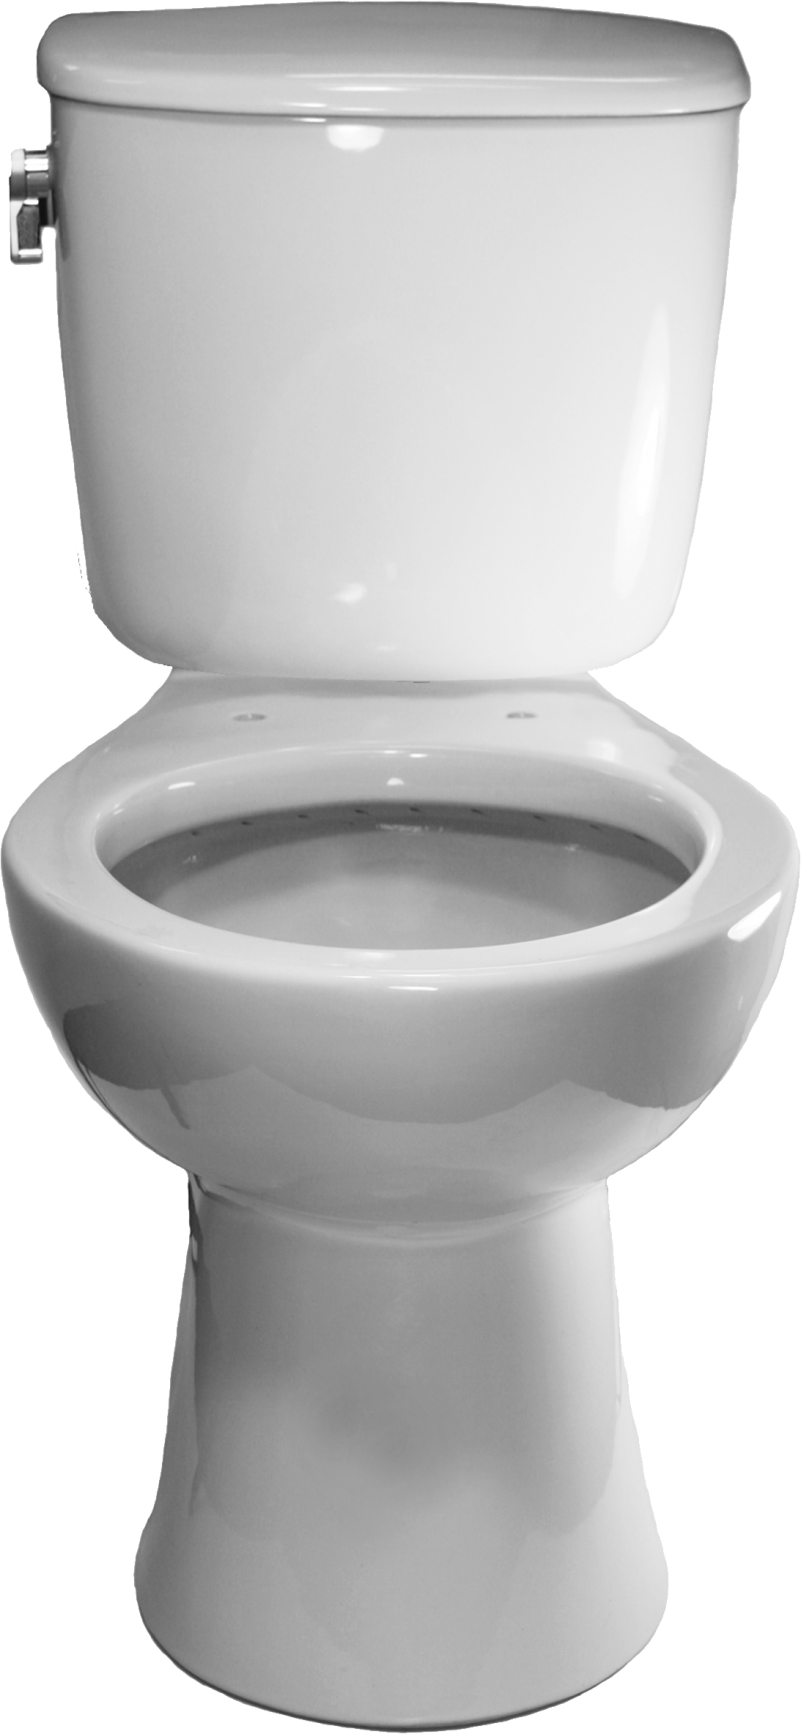 Toilet PNG Image